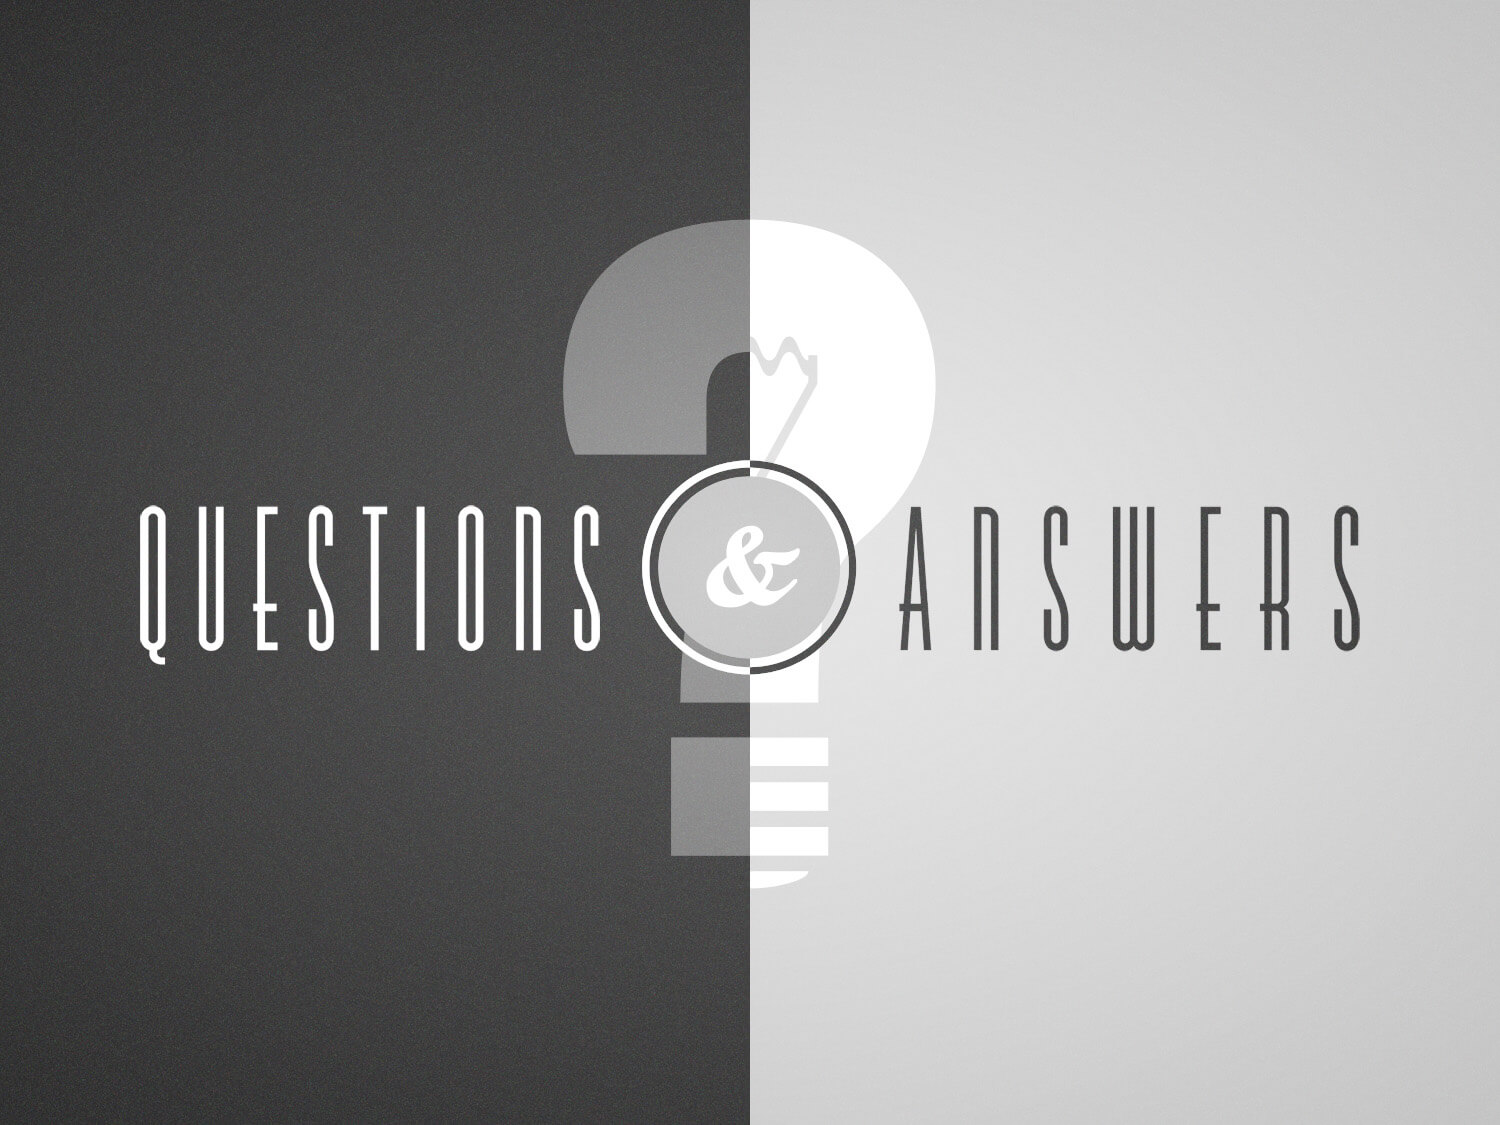 Top 100 Sensors Amp Transducers Questions And Answers For Freshers Instrumentation Tools